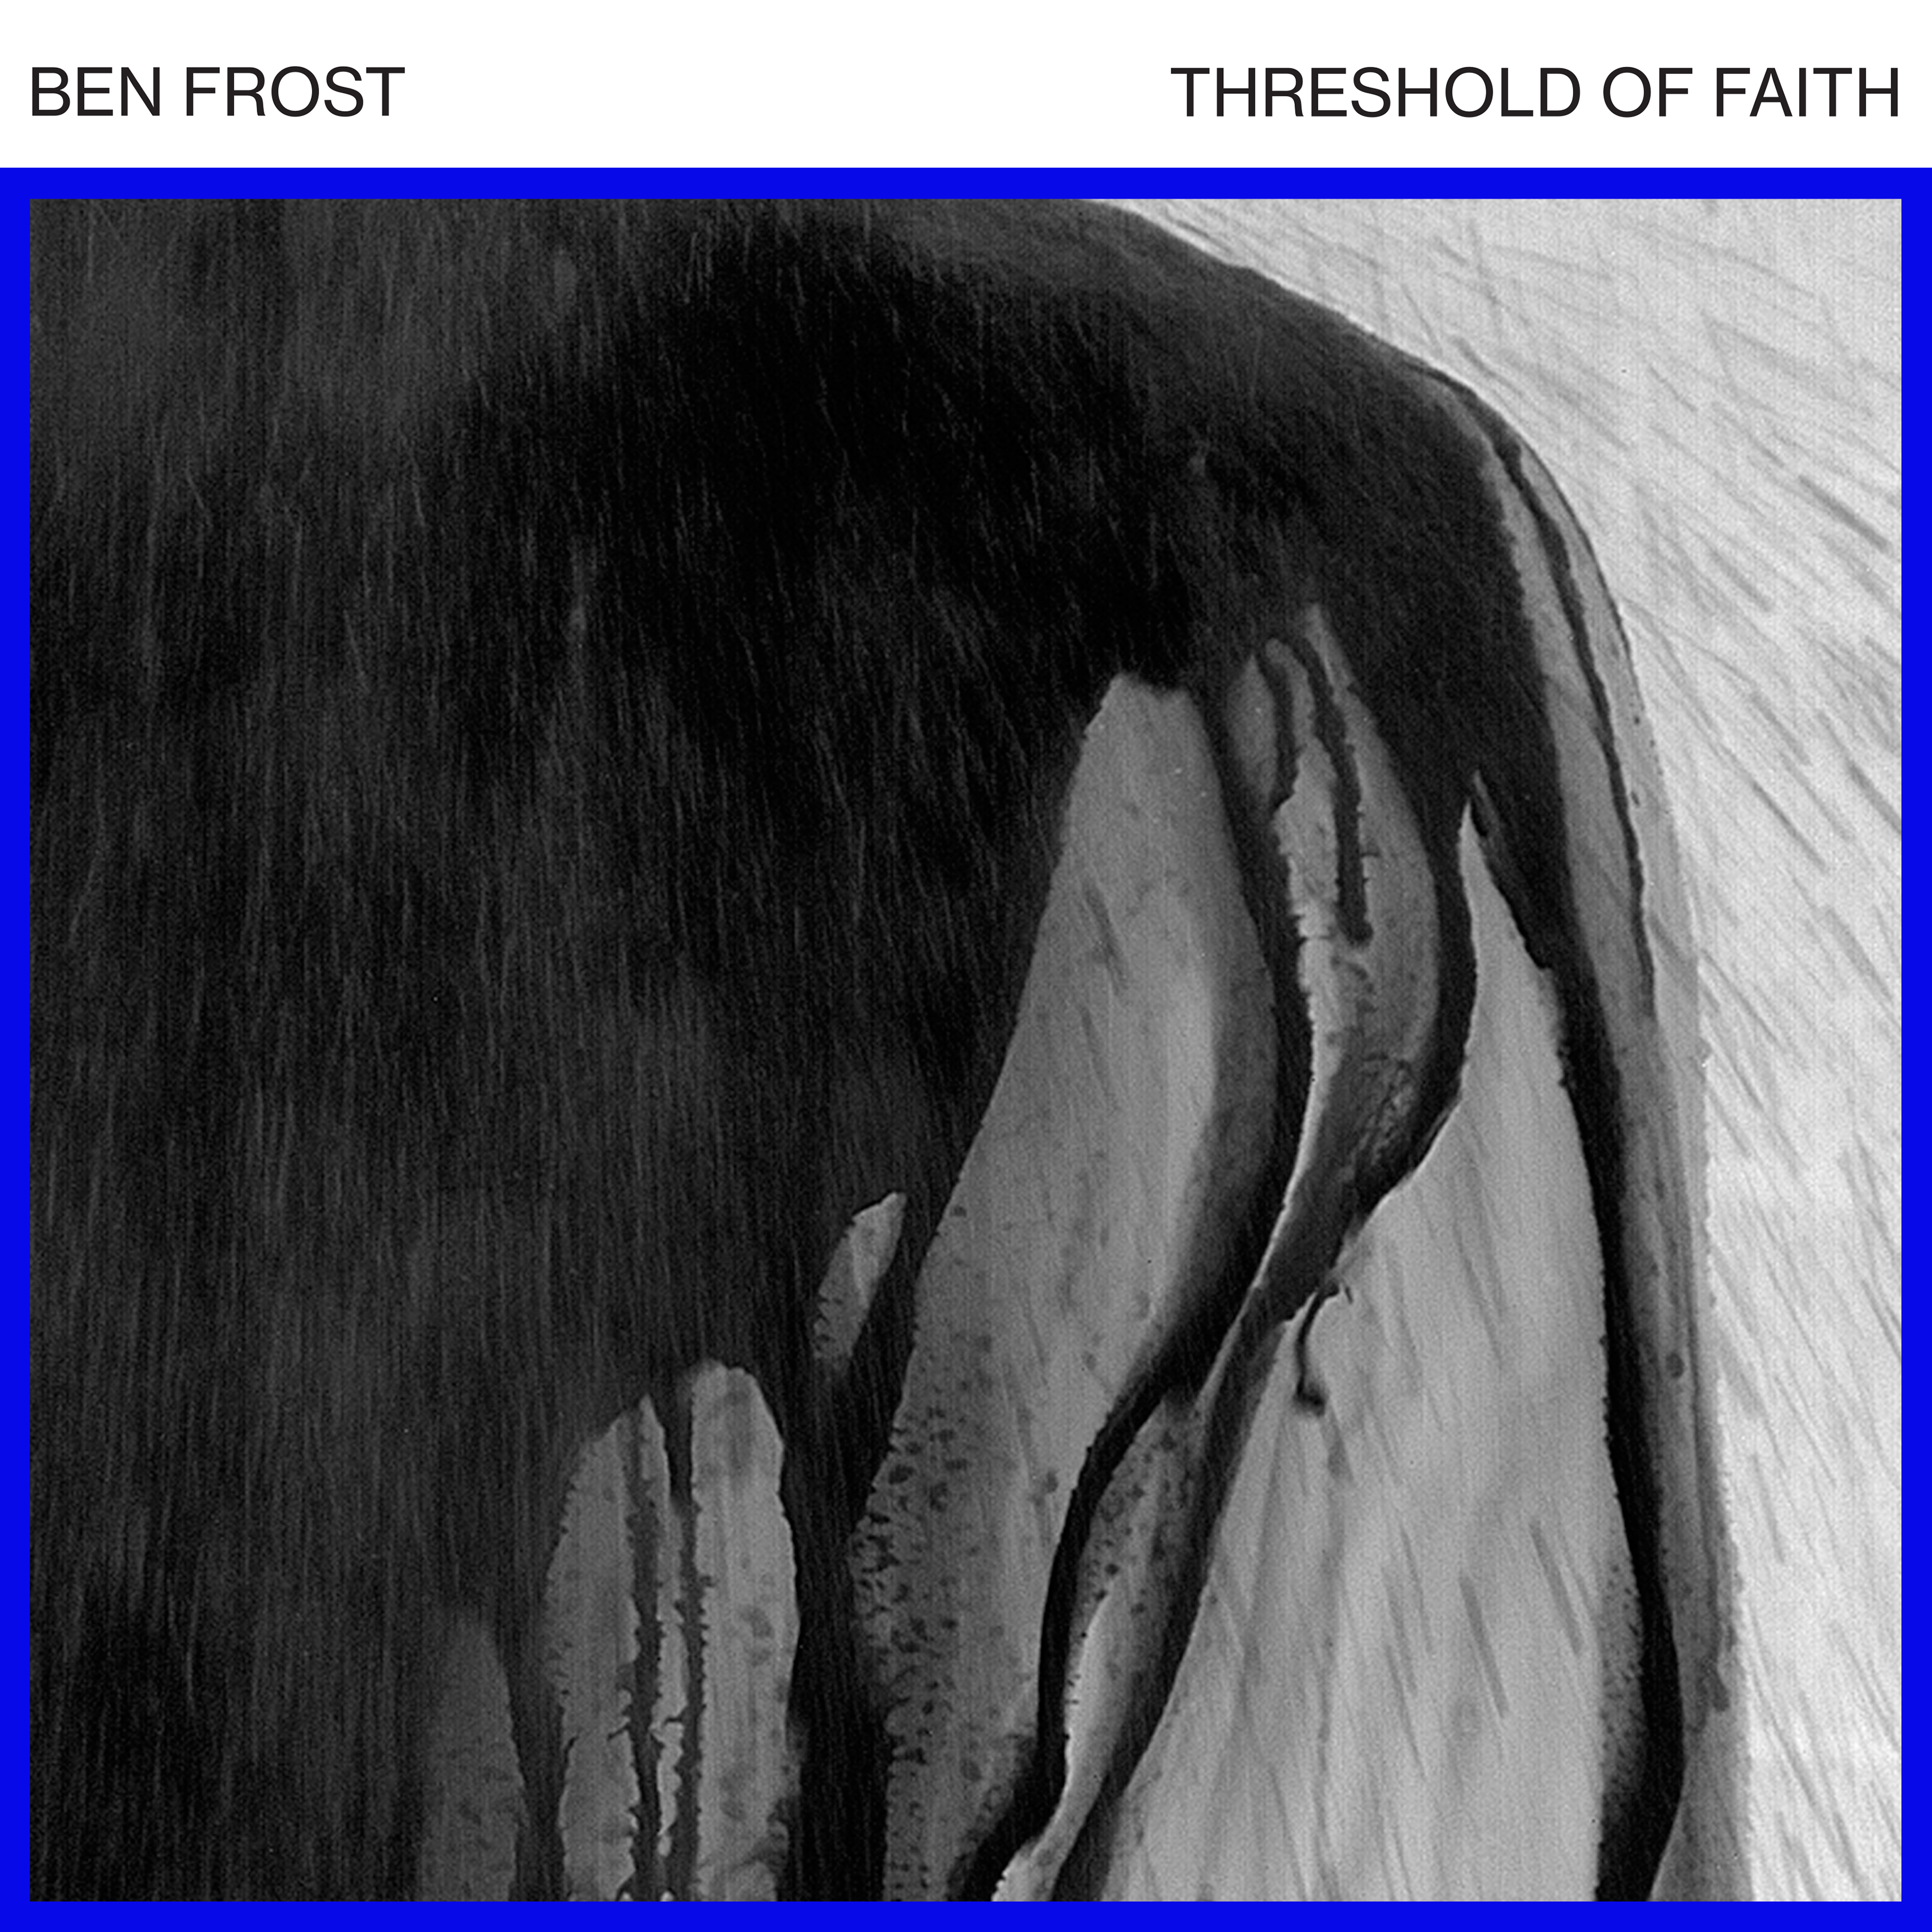 ben frost_threshold of faith